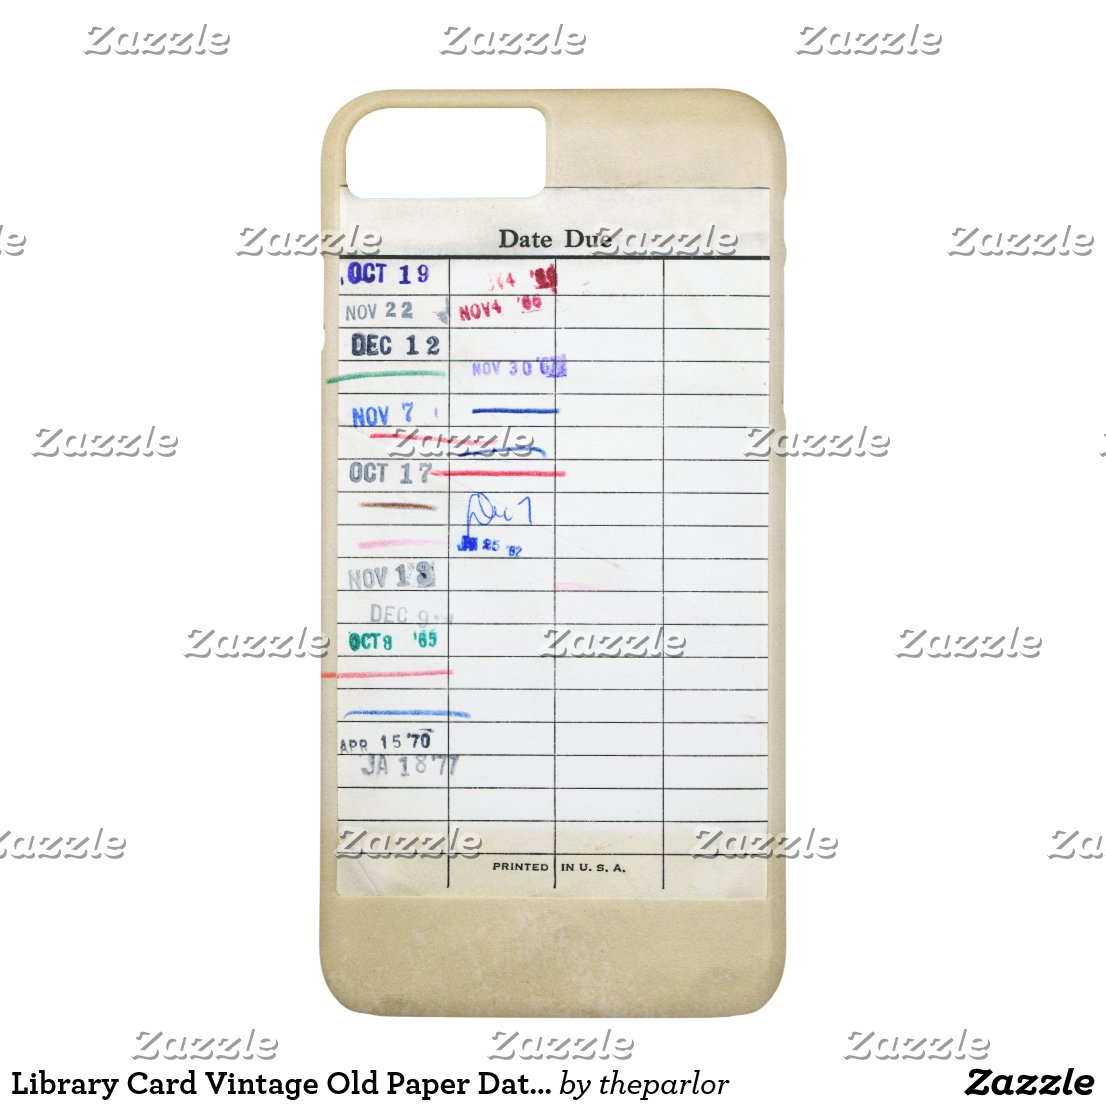 Library Card Vintage Old Paper Date Due Stamped iPhone 8 Plus/7 Plus Case